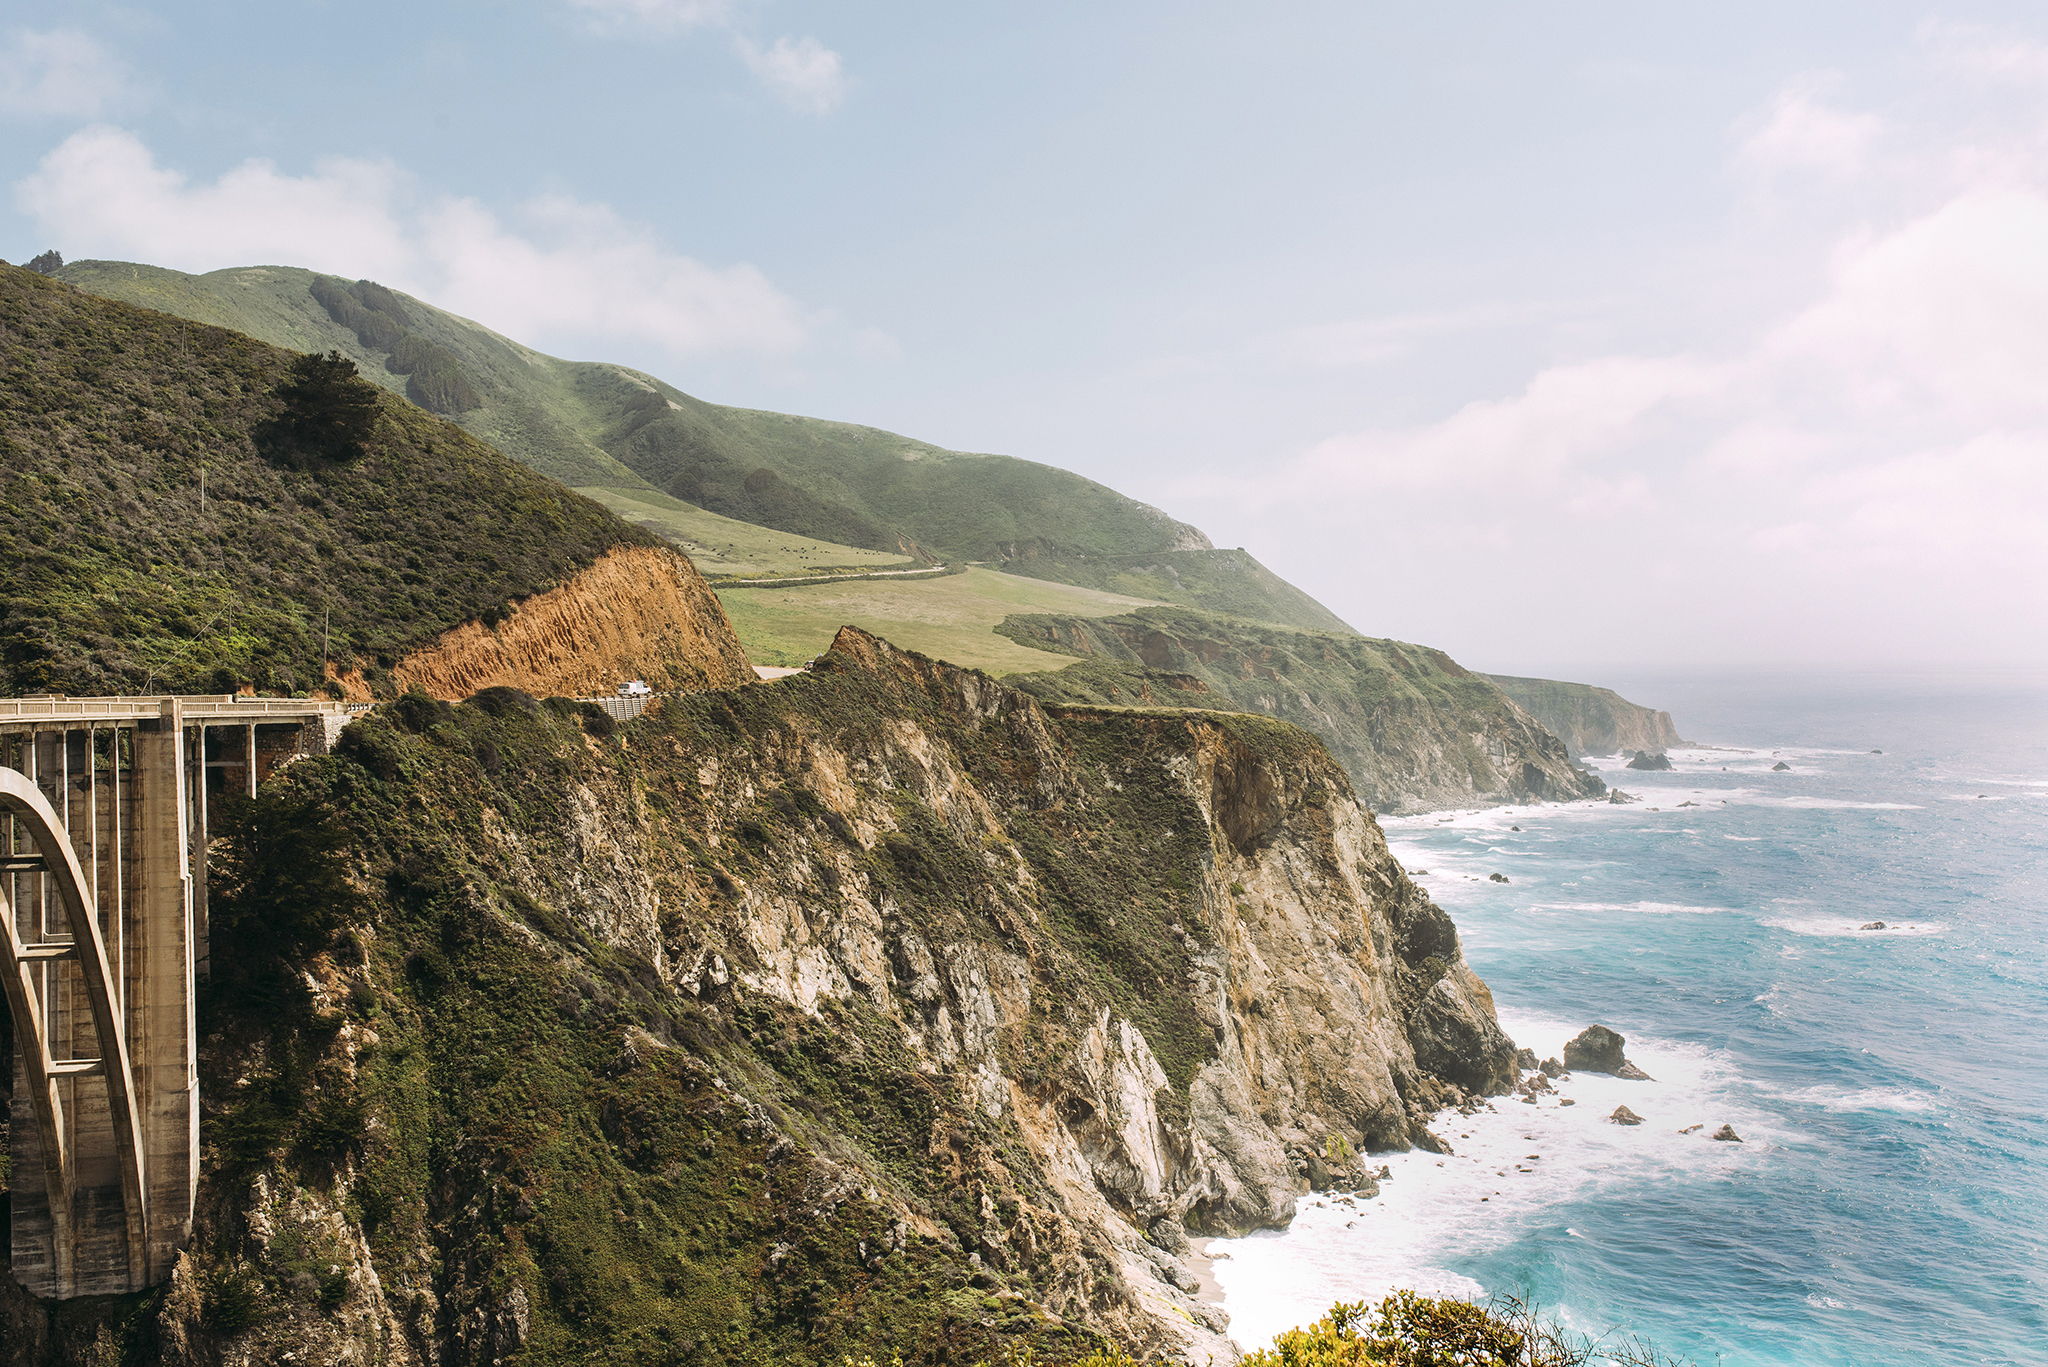 Must-See Stops Along California's Route 1